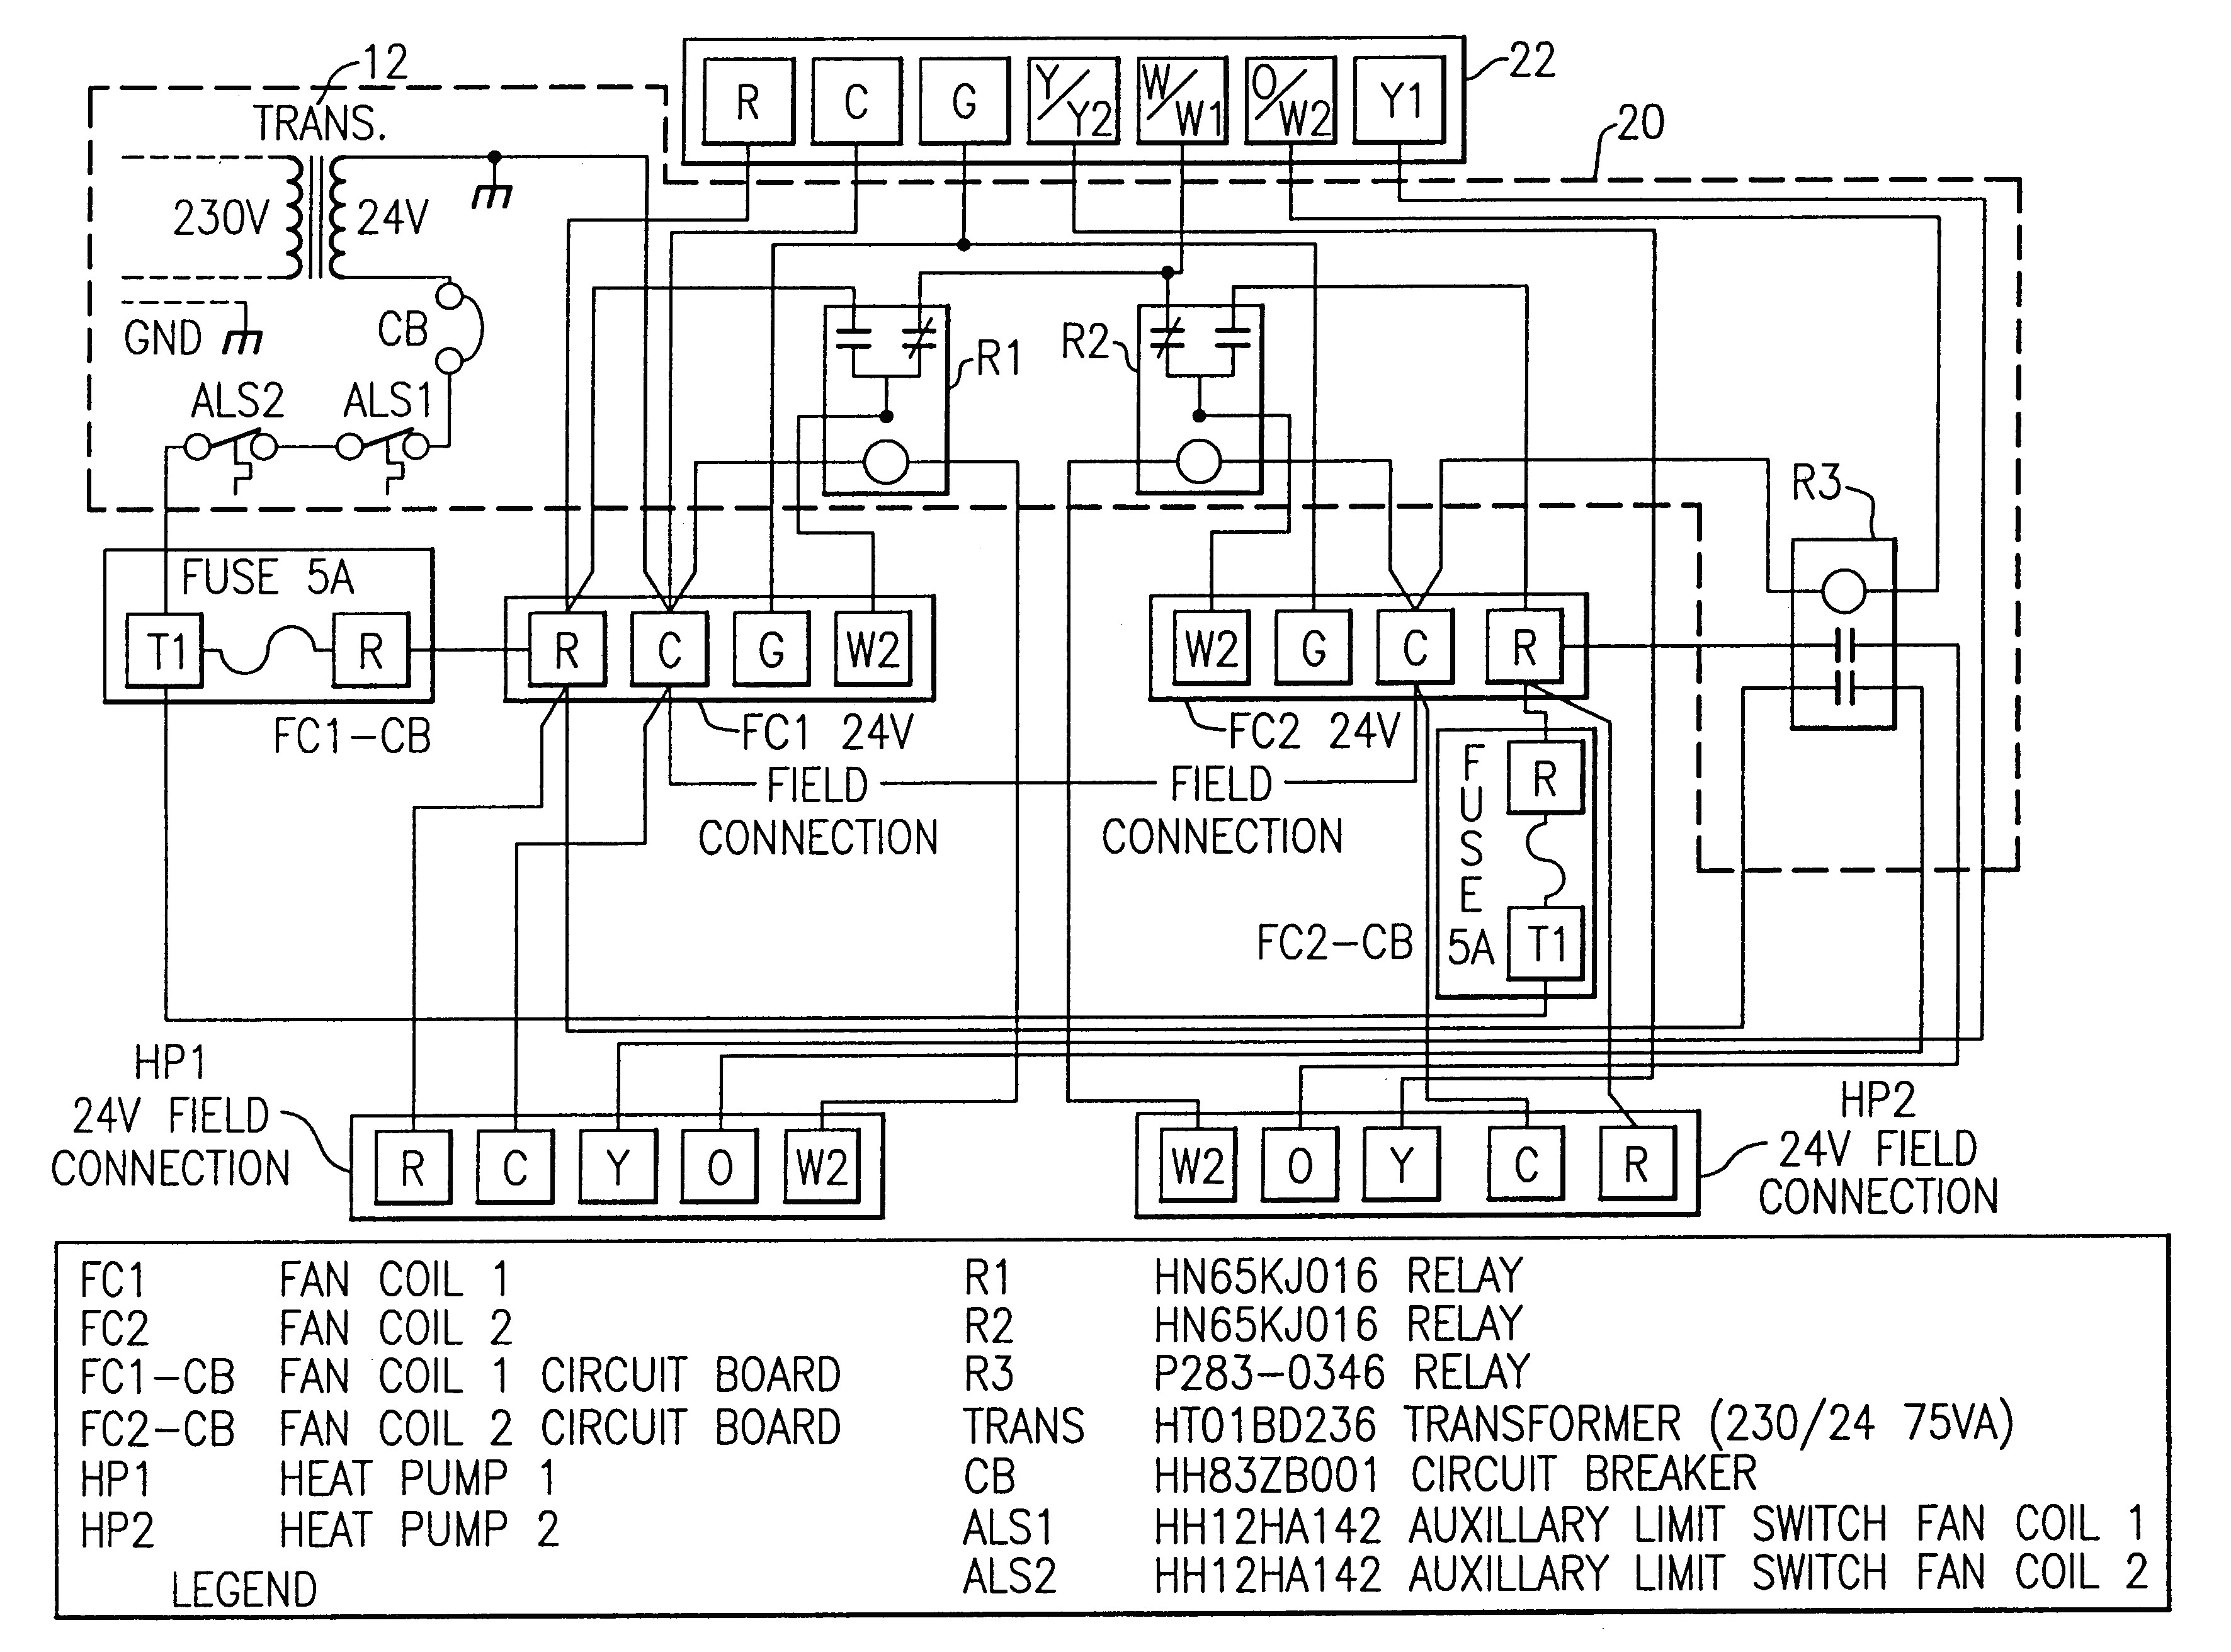 furnace fan motor wiring diagram Download-Blower Motor Wiring Diagram Inspirational Furnace Blower Motor Wiring Diagram Dejual 7-s